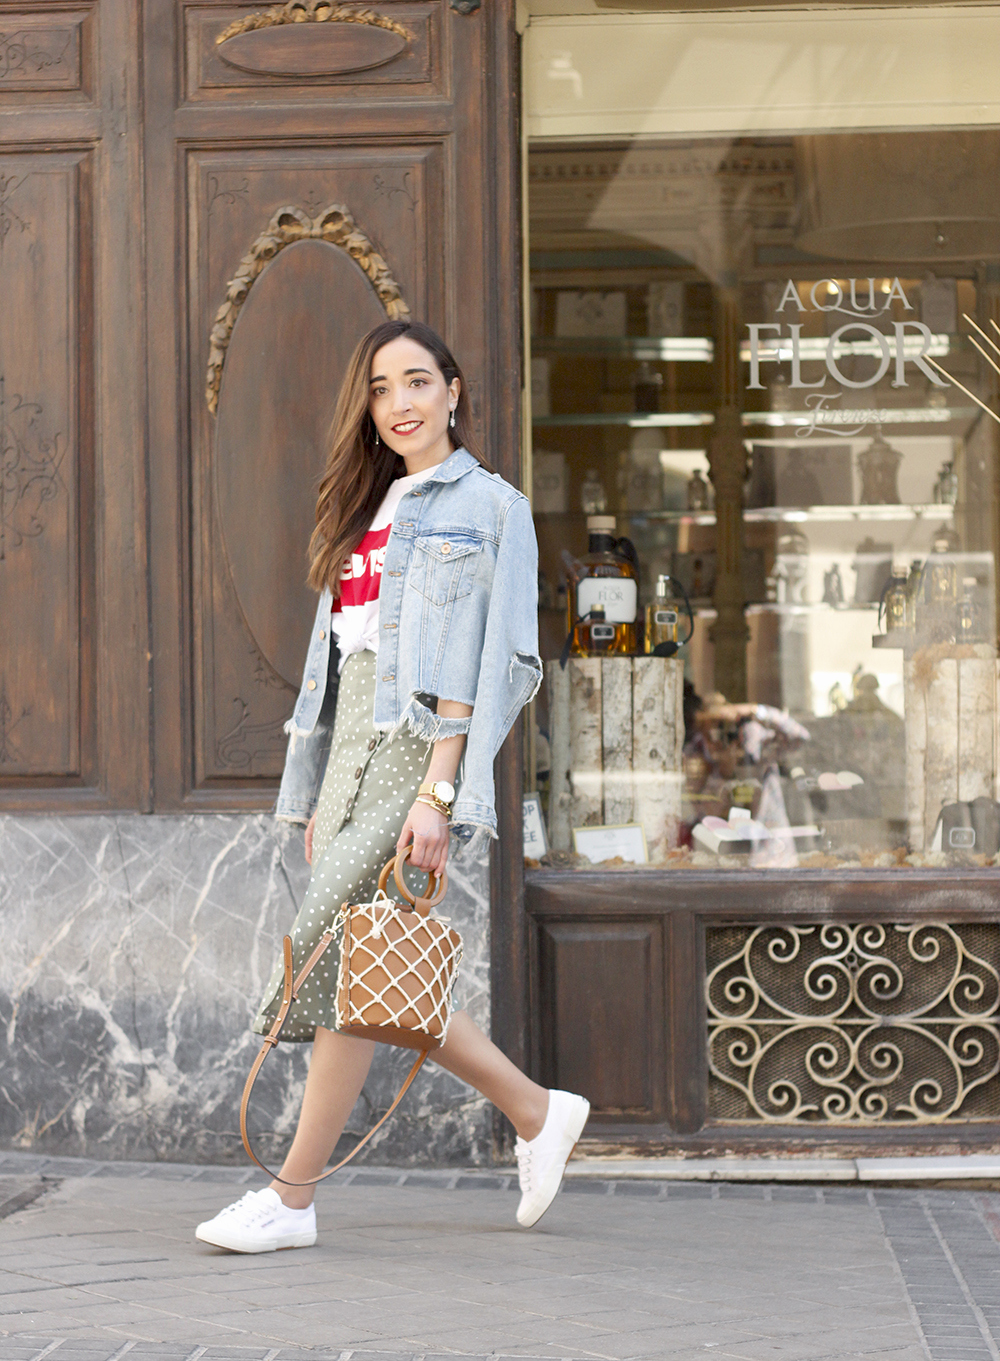 midi polka dots skirt denim jacket levis tshirt superga sneakers street style casual outfit spring 20195